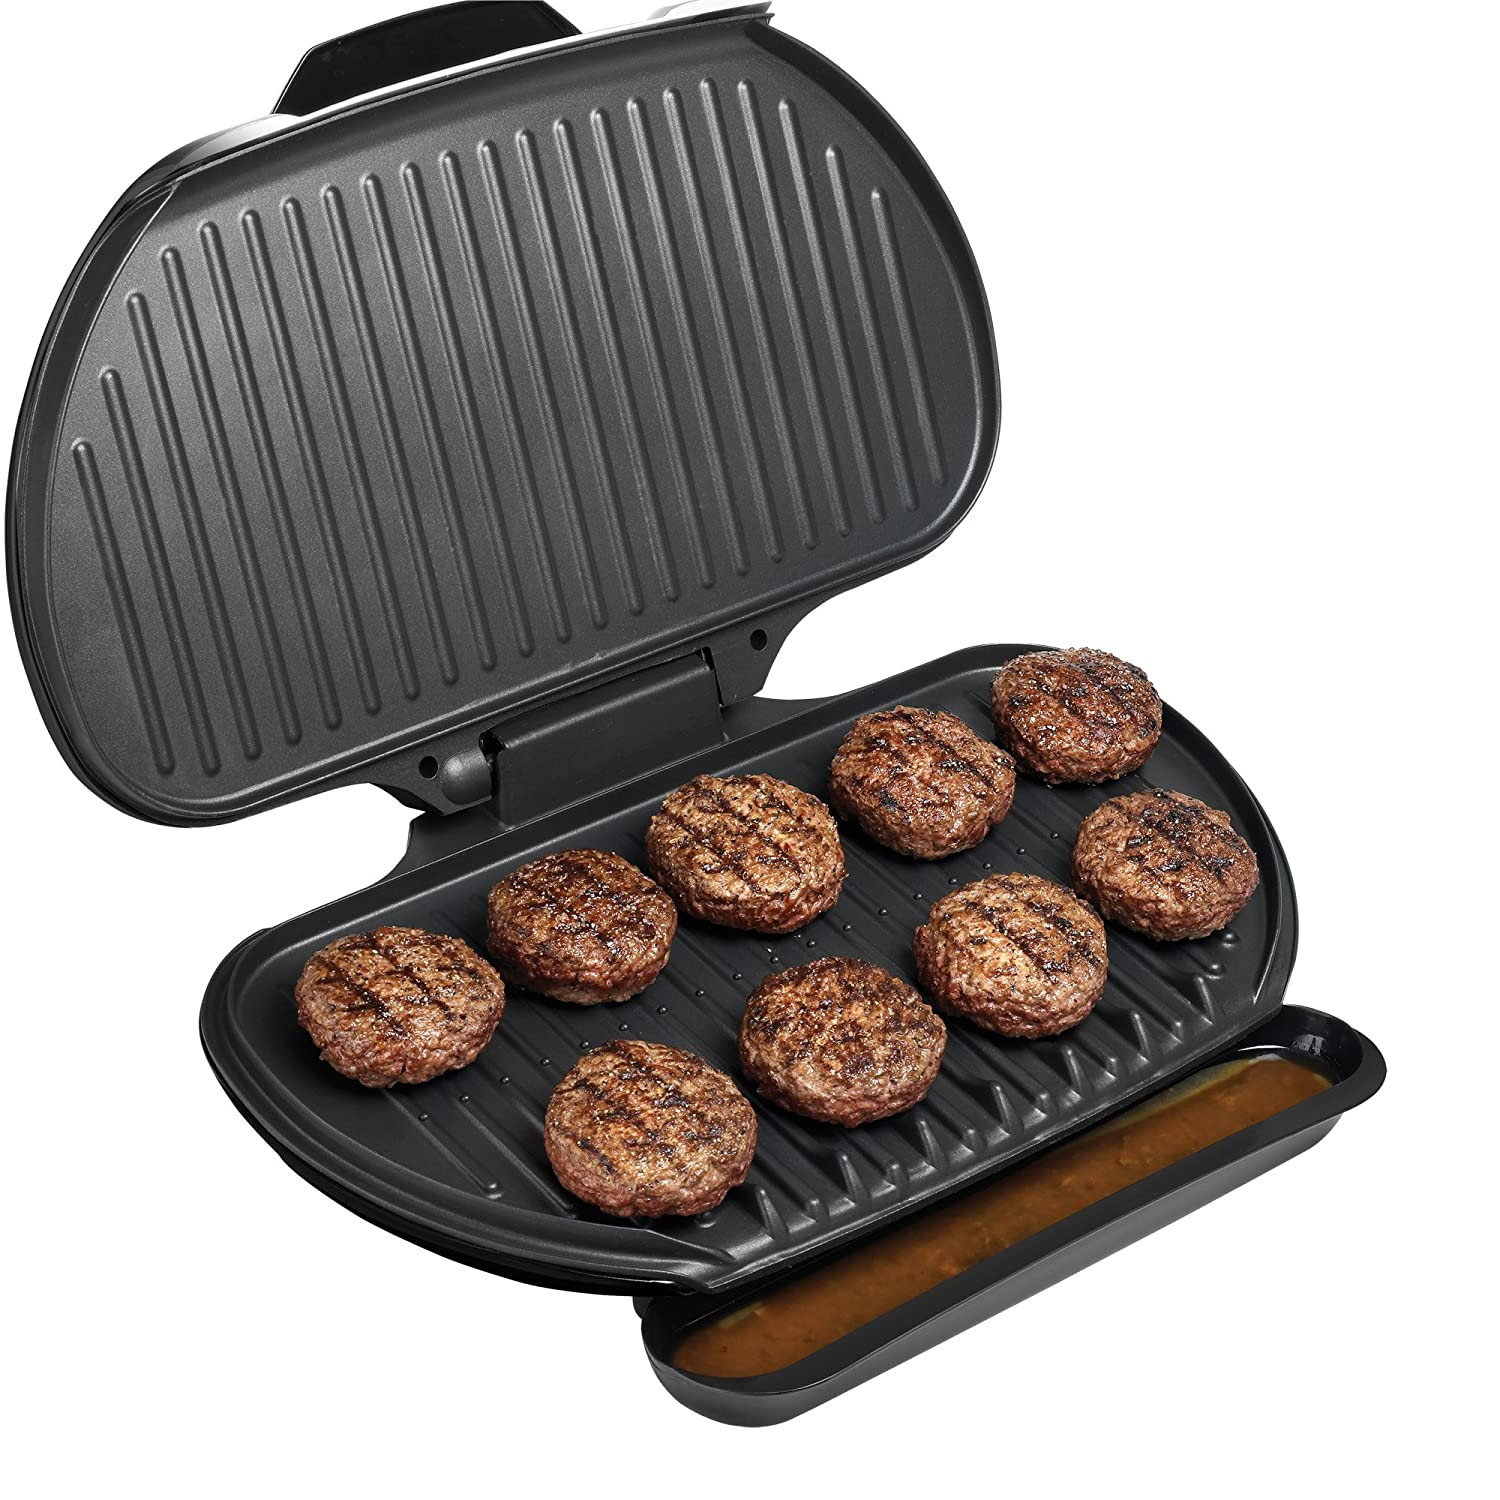 George foreman grill family size indoor electric large for George foreman grill fish